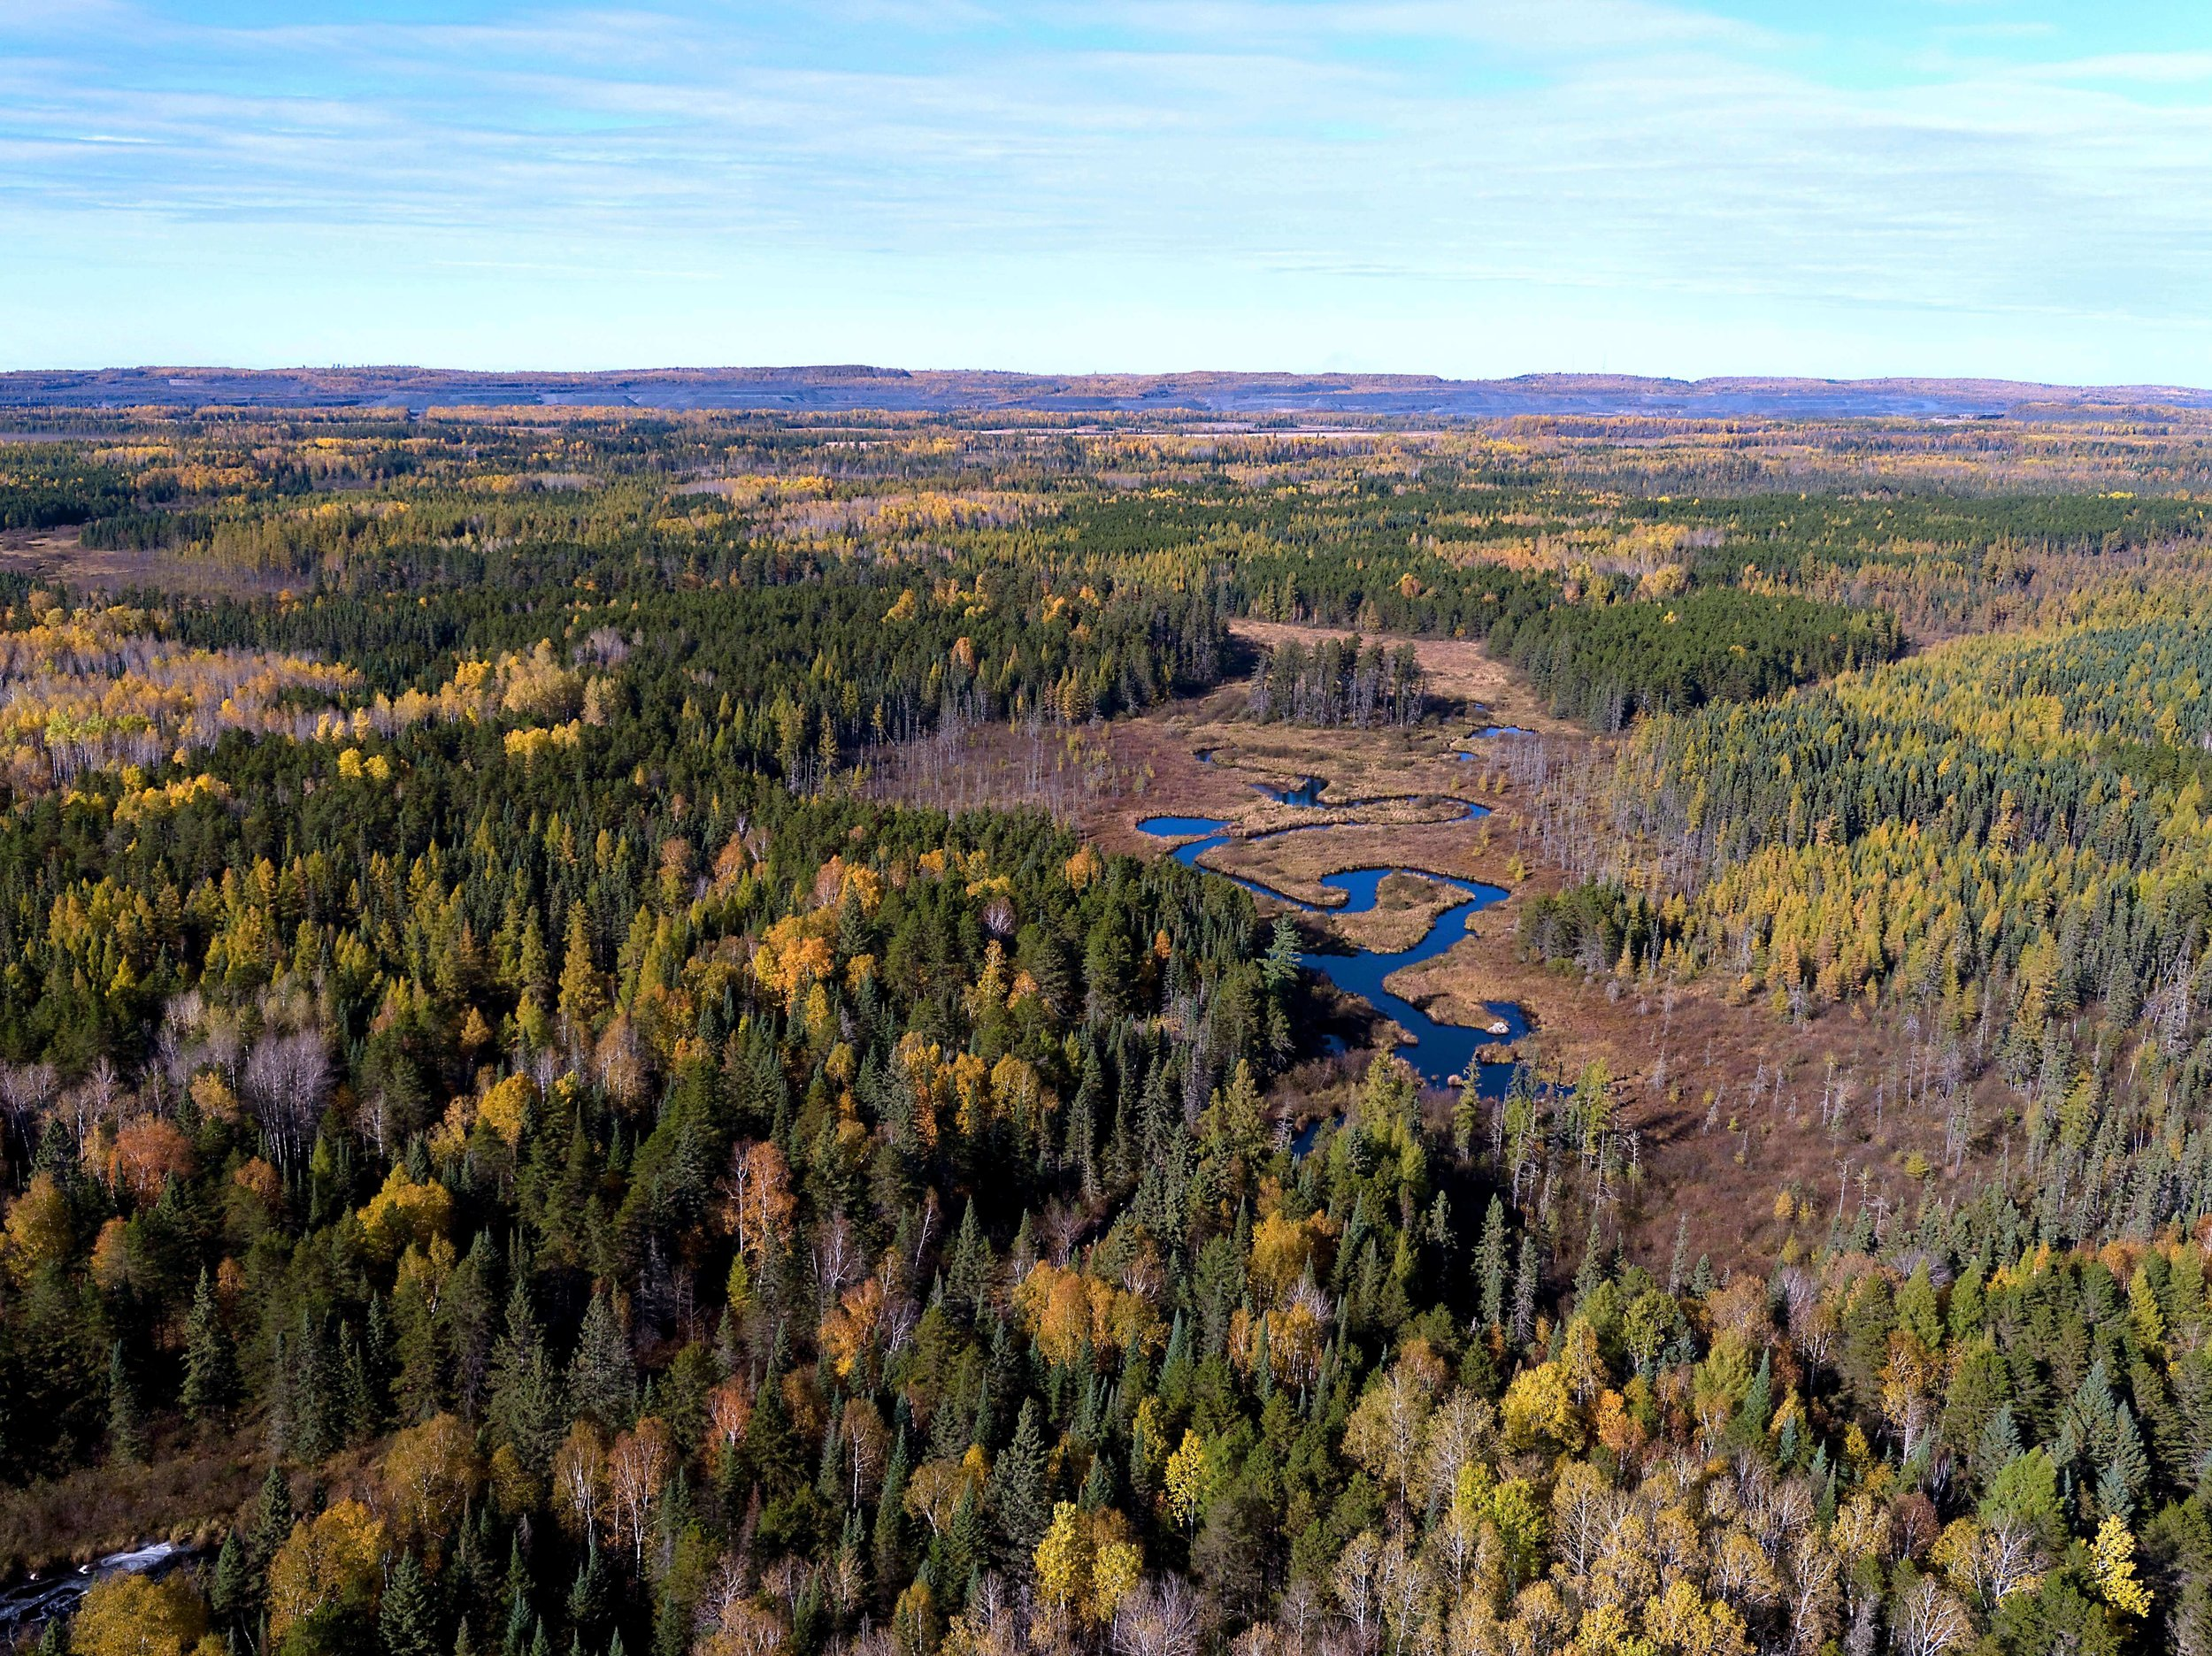 The Partridge River, near the proposed PolyMet Mine site. Photo by Rob Levine.